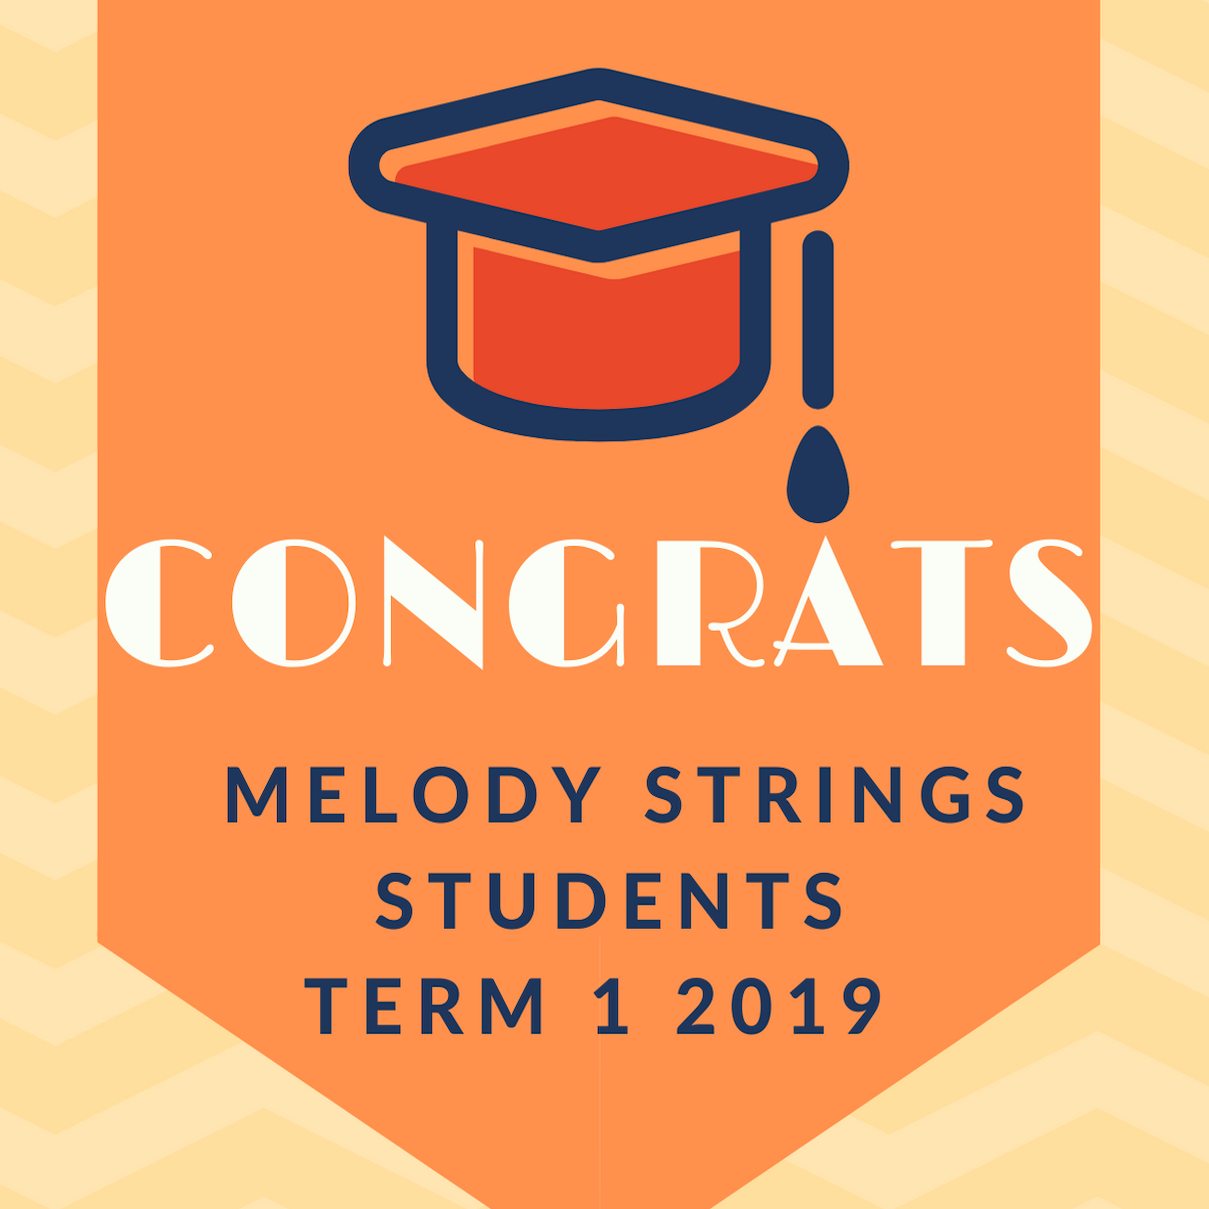 Melodysac's students Term 1 2019